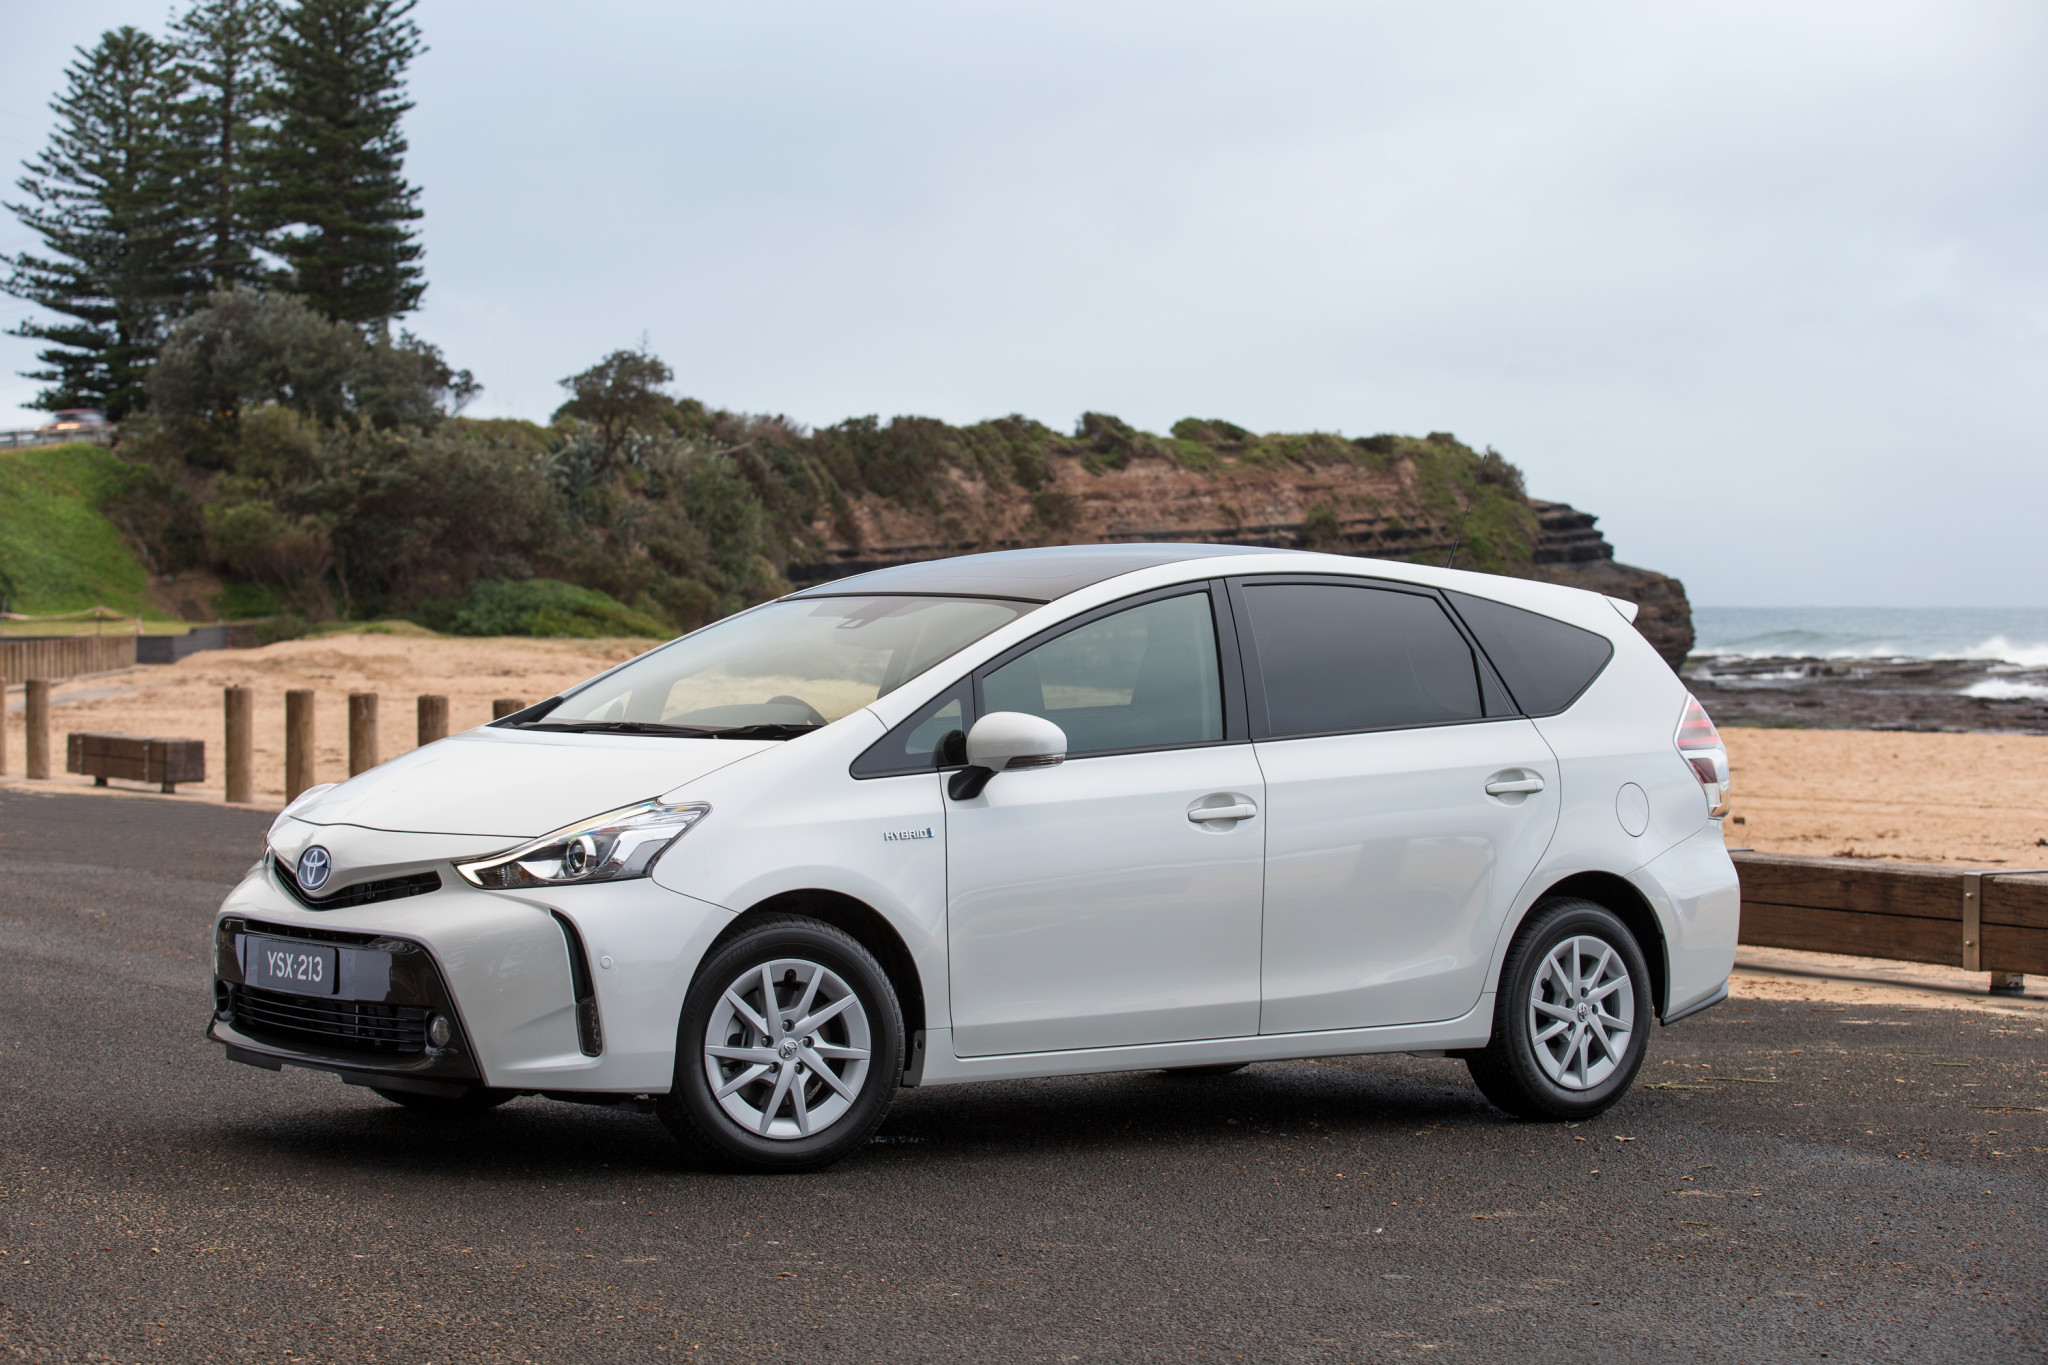 refreshed 2015 toyota prius v hybrid revealed practical motoring. Black Bedroom Furniture Sets. Home Design Ideas